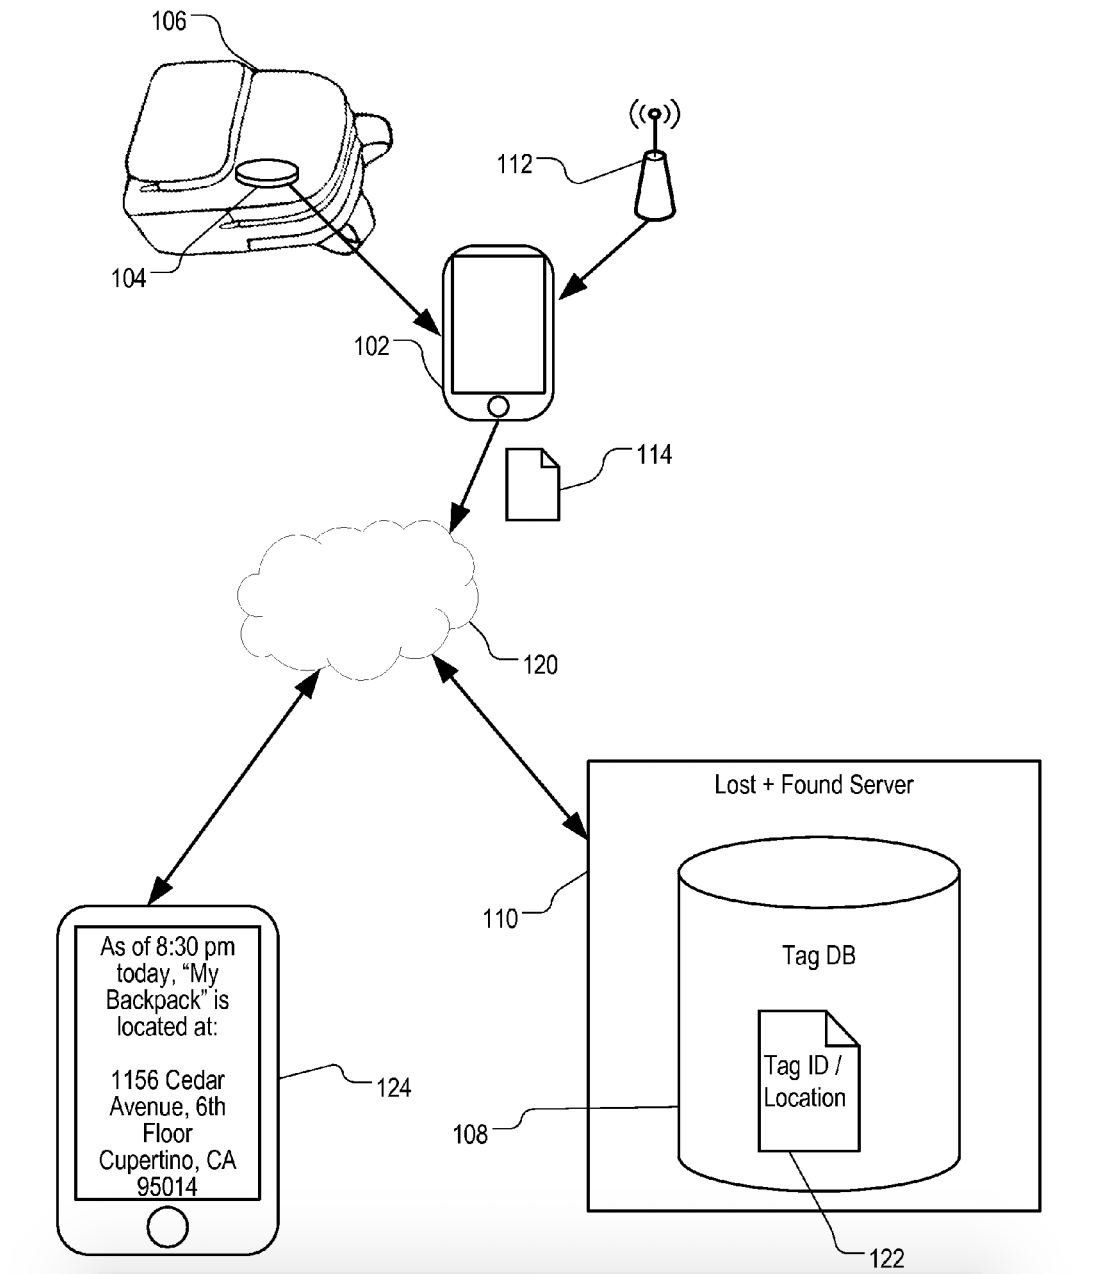 A drawing from a patent filing shows how Apple envisions a crowdsourced lost-and-found network enabled by Bluetooth low energy devices.